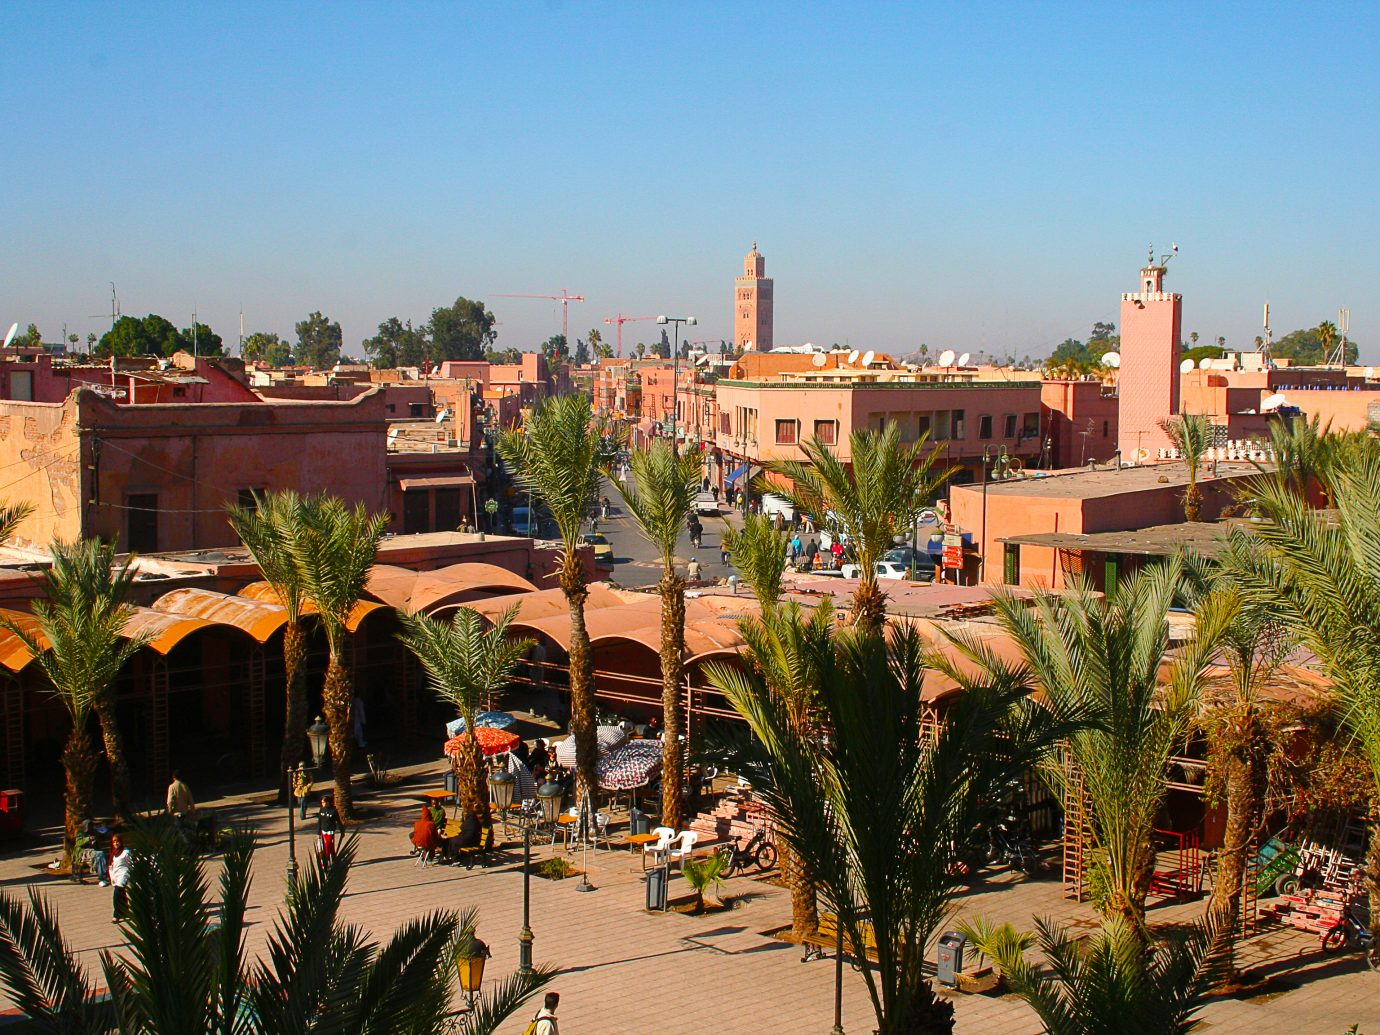 Marrakesh's Medina quarter in Morocco, Northern Africa